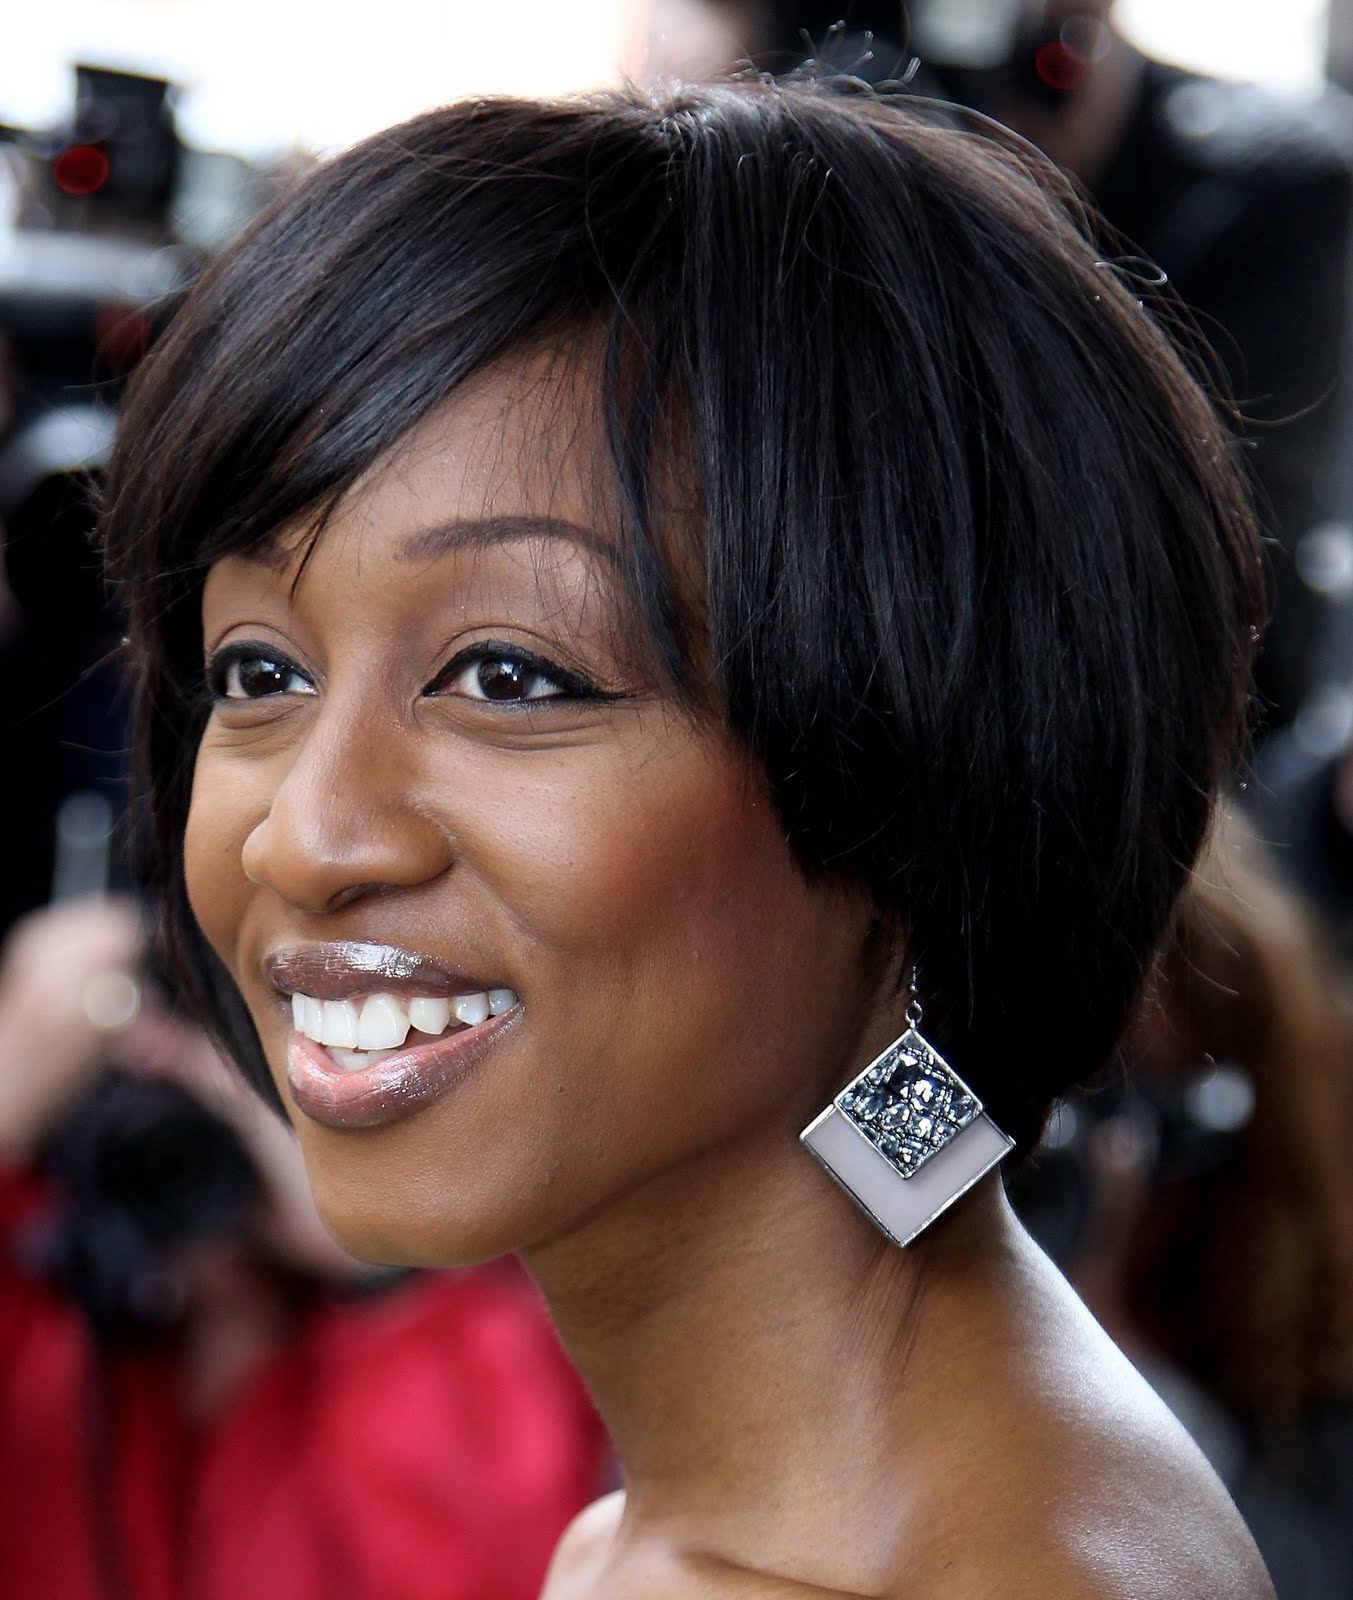 Hot Secrets: BEVERLEY KNIGHT SIGNED UP FOR MALAWI'S LAKE OF STARS